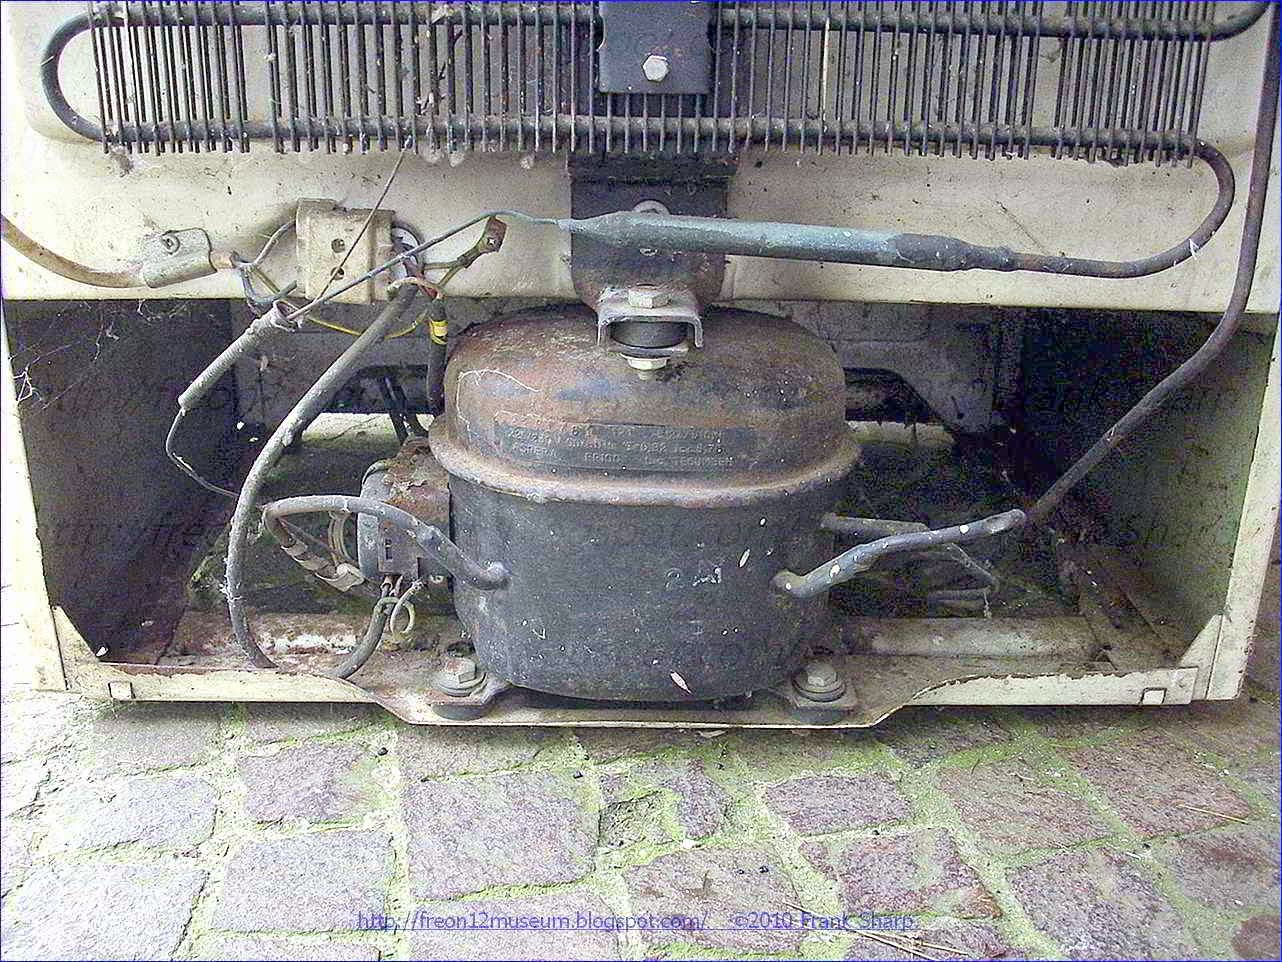 under the ice in a sealed compressor including a sealed casing in which an alternating motor driven compressor assembly is housed the assembly including a vertical axis